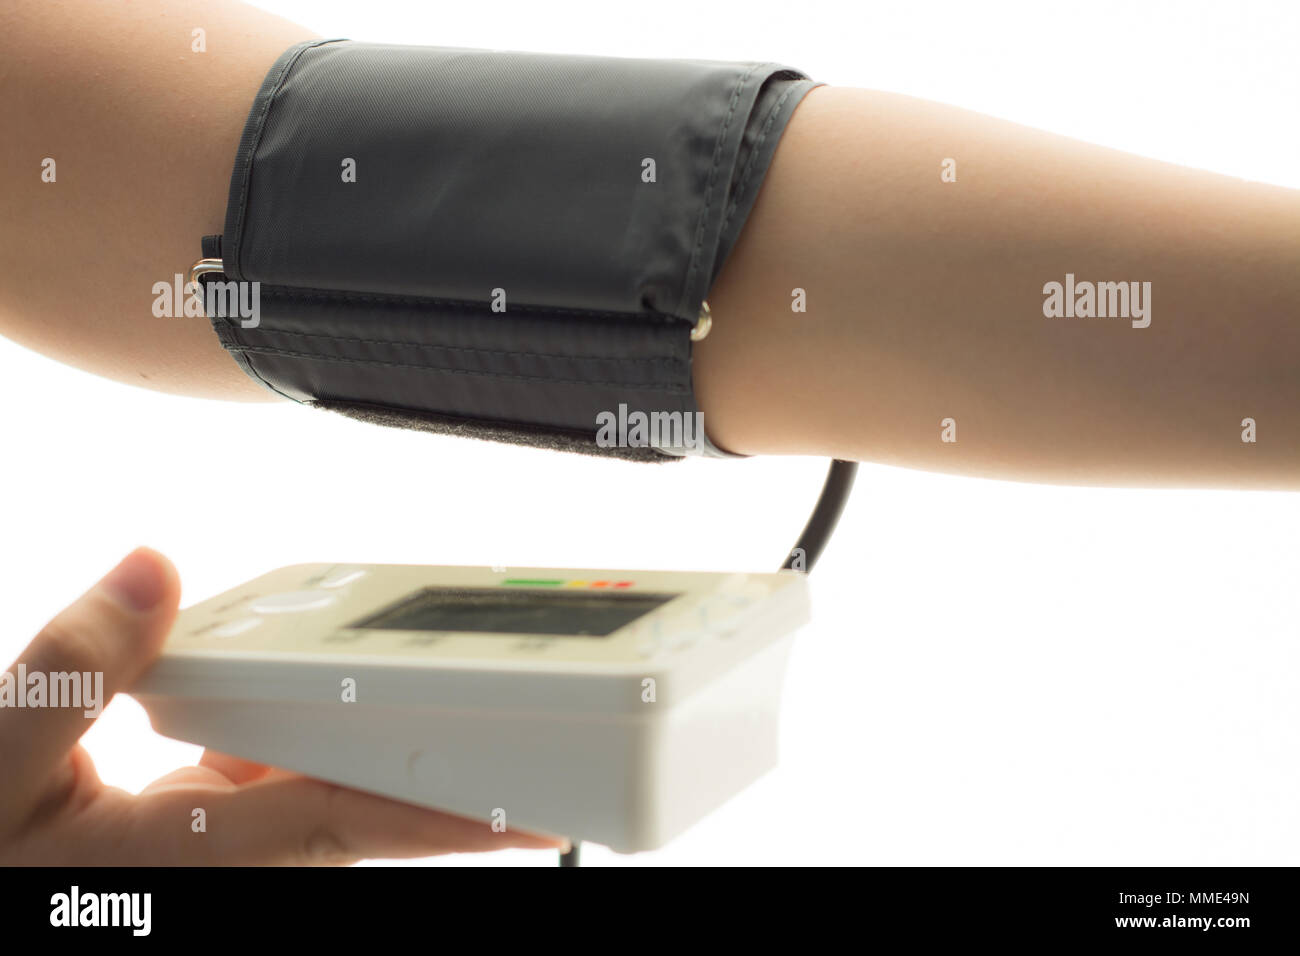 Blood Pressure Check - Stock Image